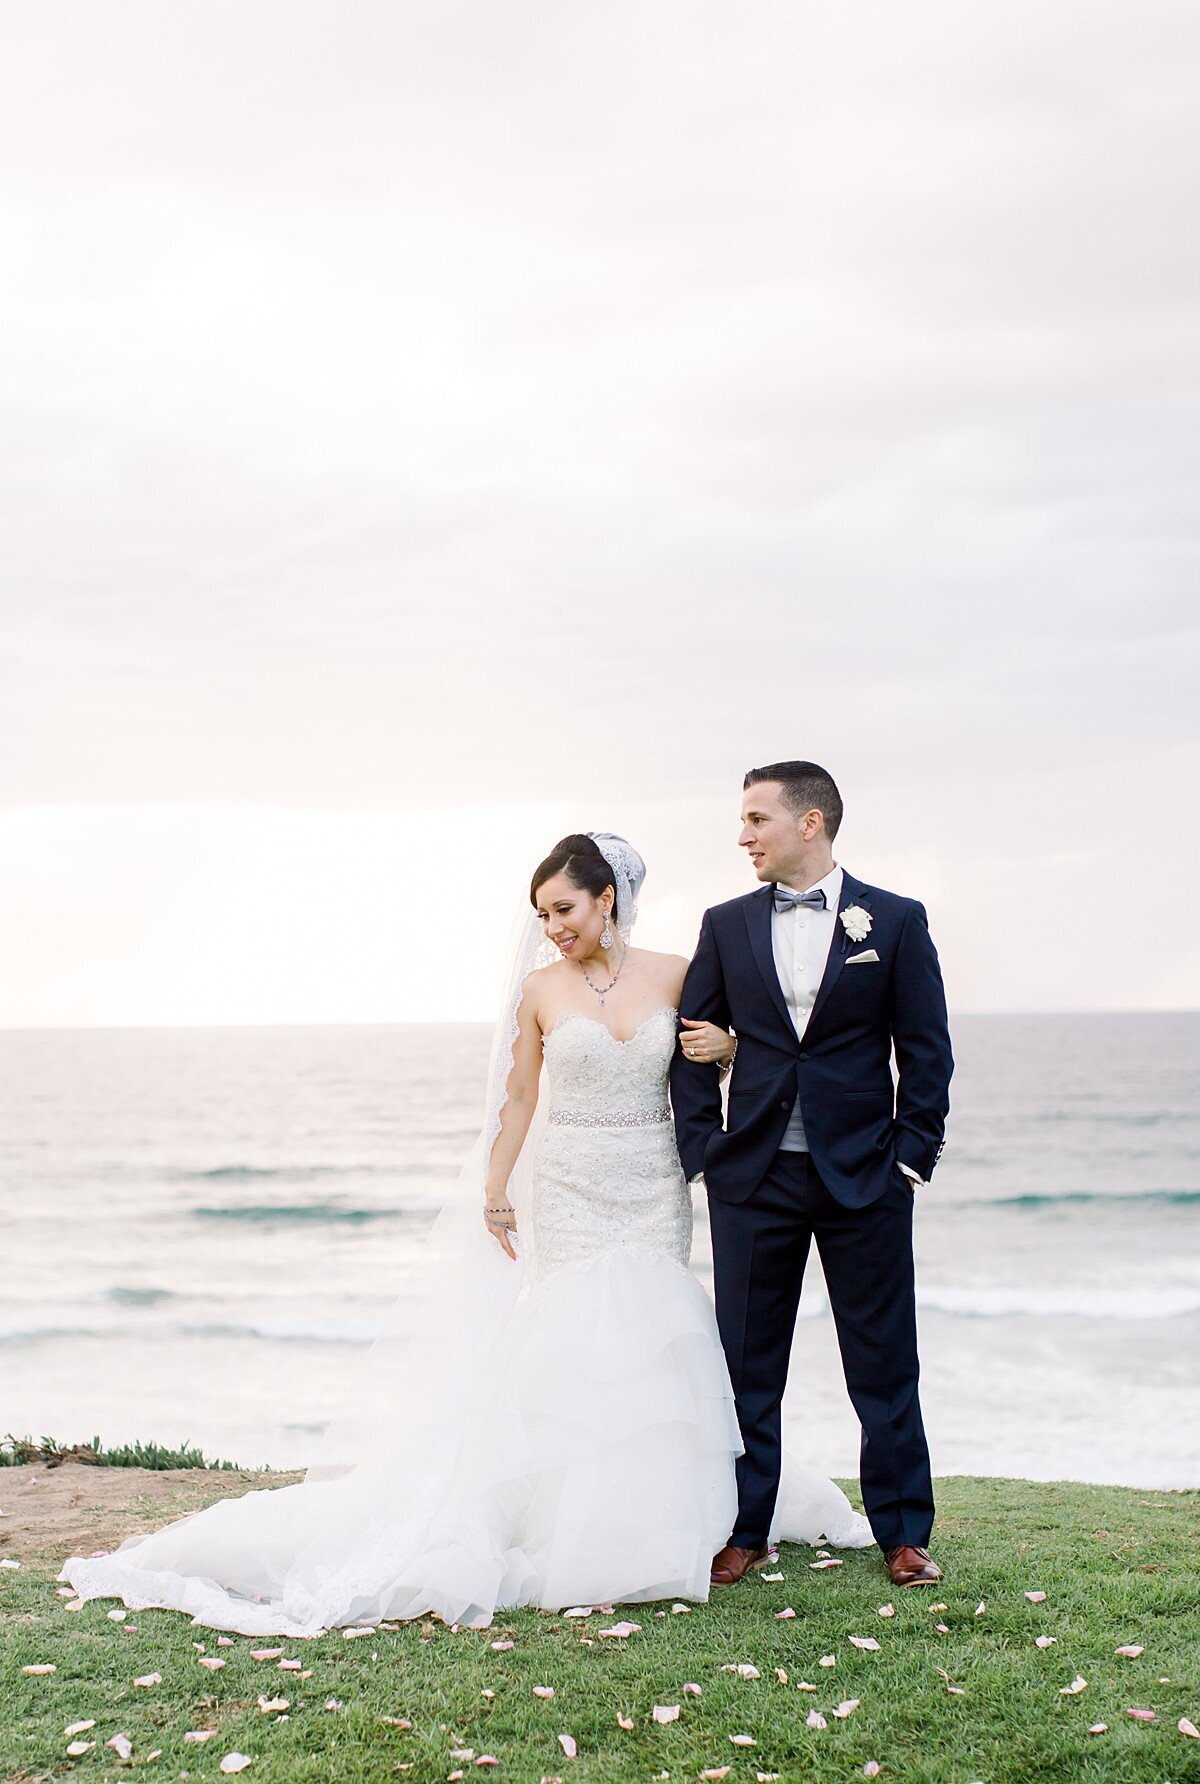 Del Mar California Wedding at L'Auberge Del Mar